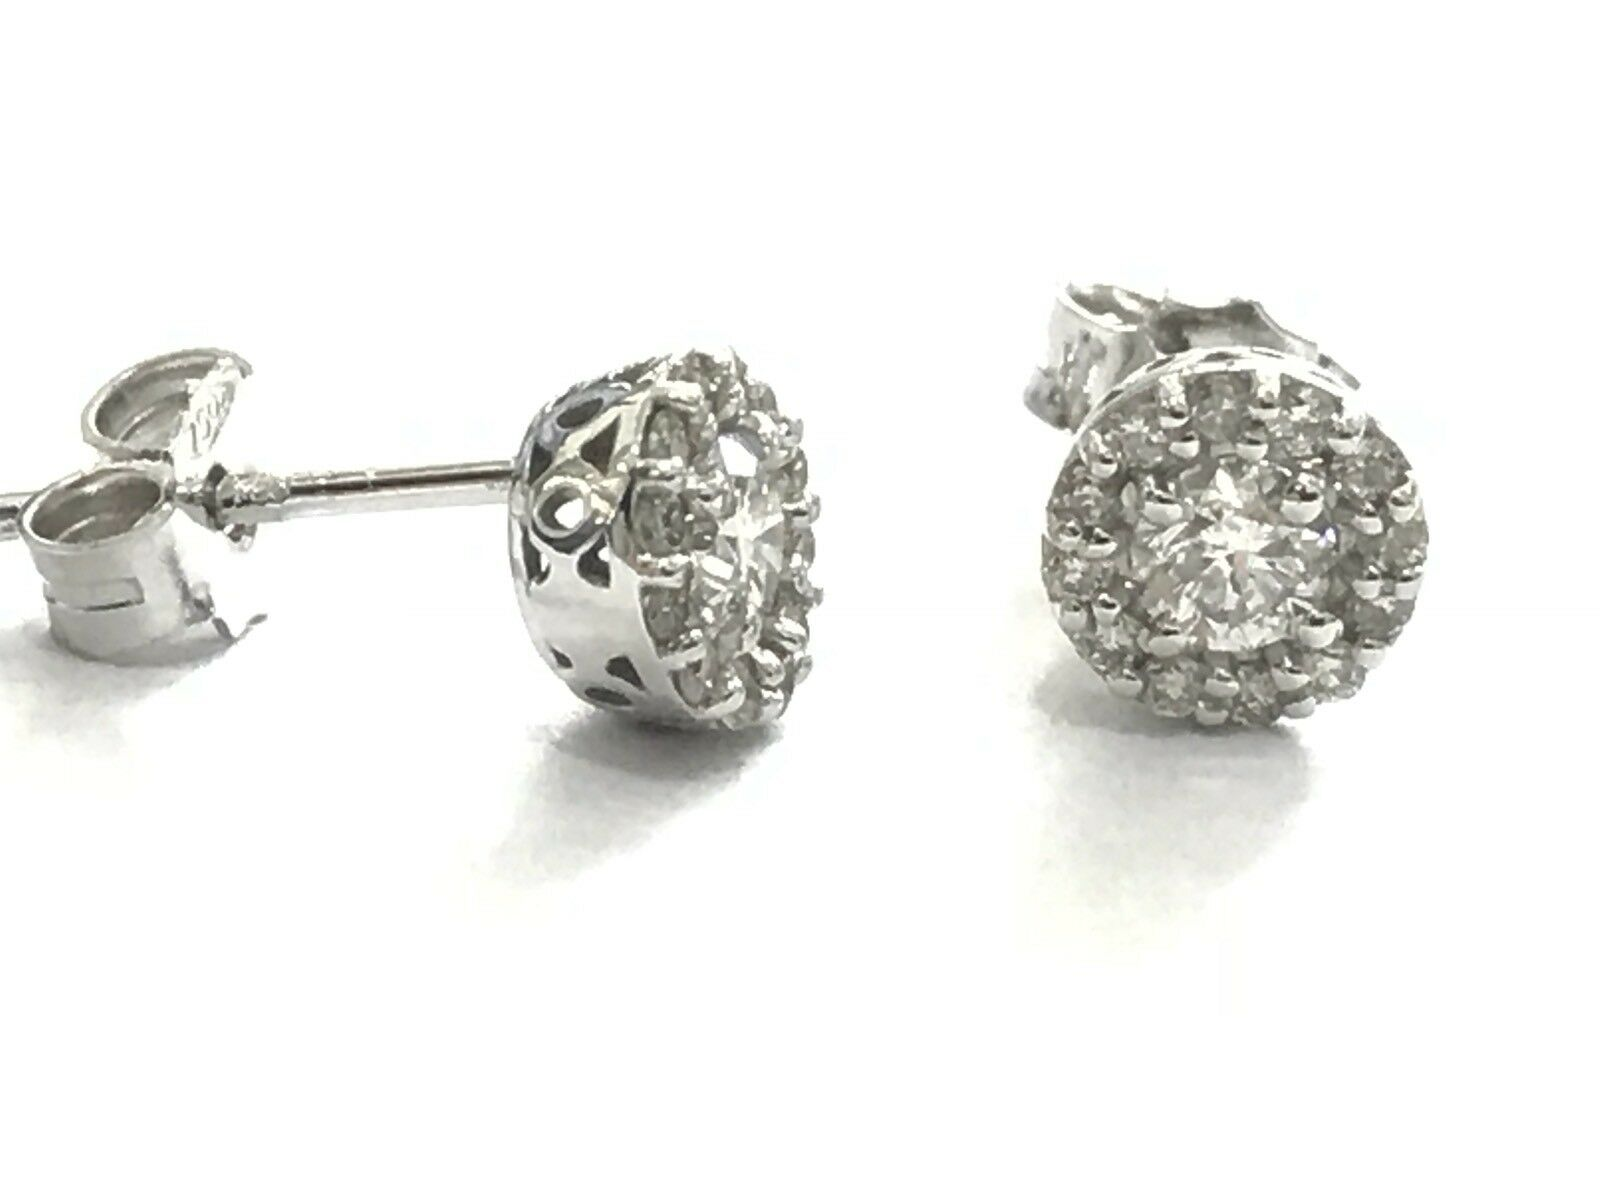 c2c2318207efc 0,42 natural diamonds and gold CT 18 SPOT LIGHT EARRINGS CT white ...